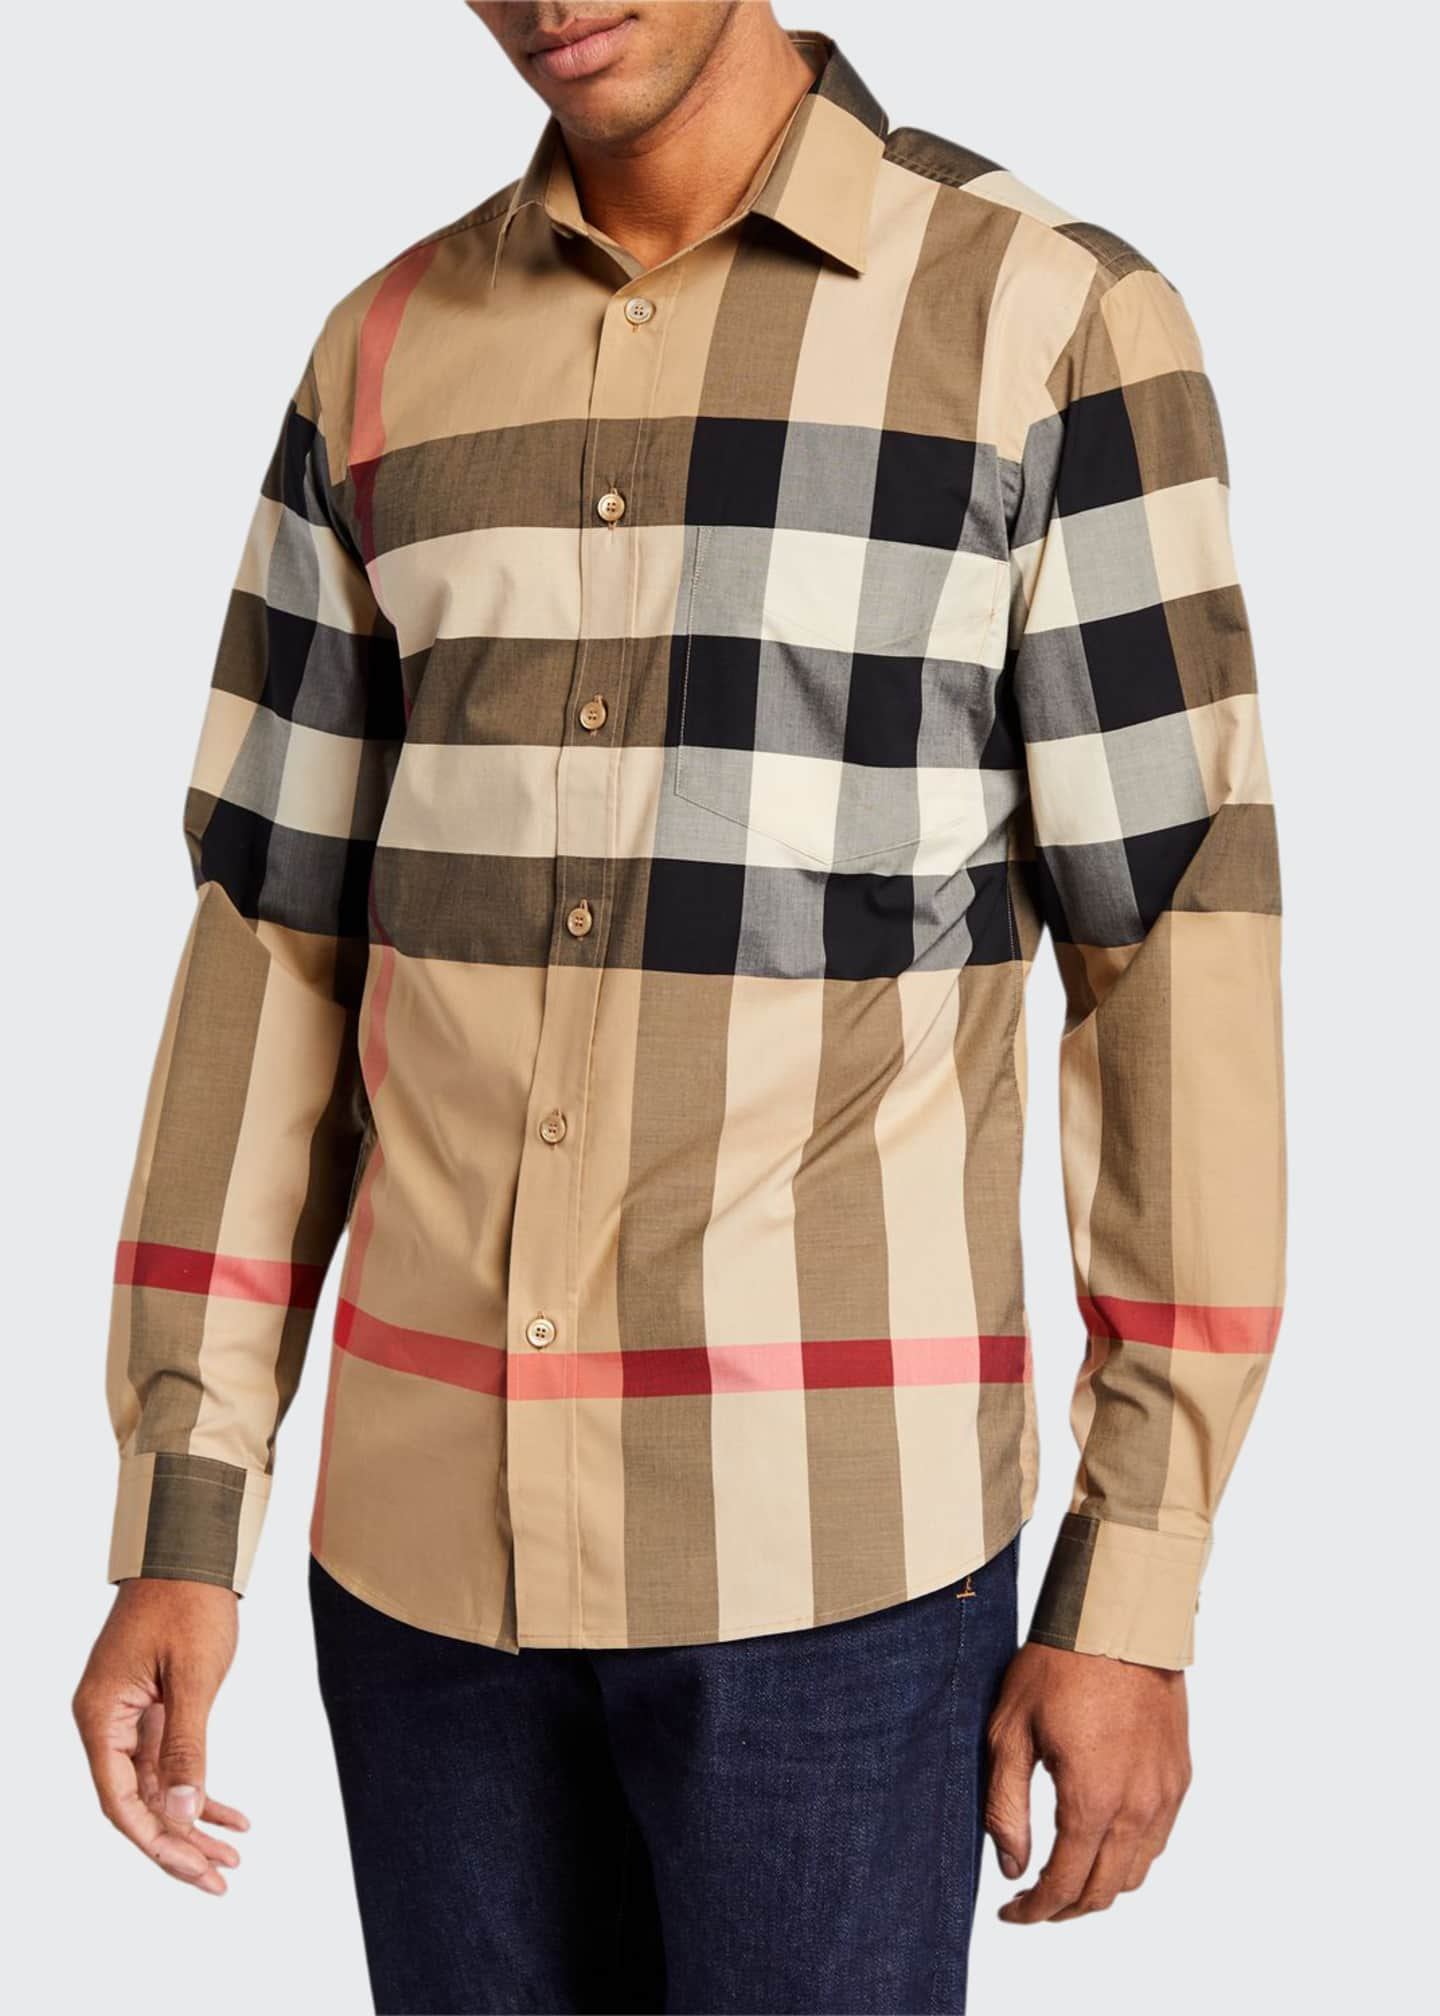 Burberry Men's Somerton Check Sport Shirt